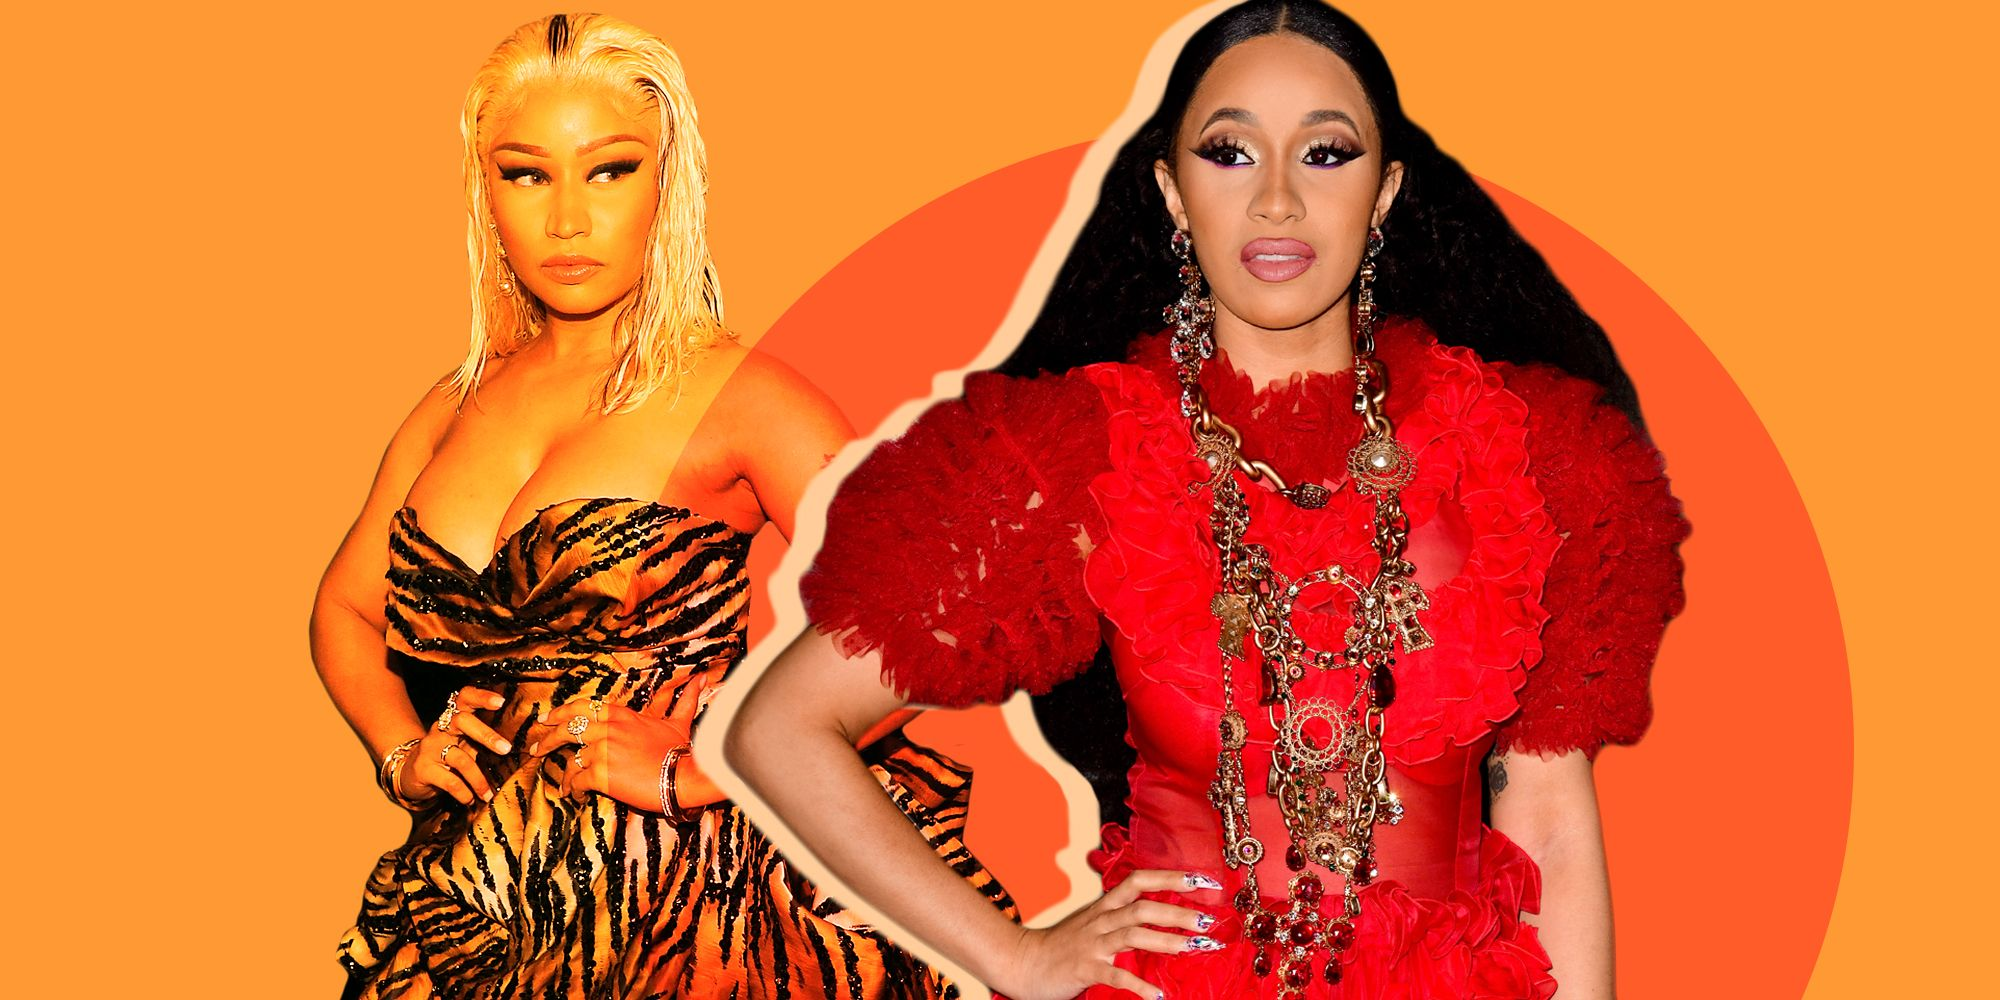 Watch Apparently, Cardi B Feels Zero Remorse About Her Fight with Nicki Minaj video